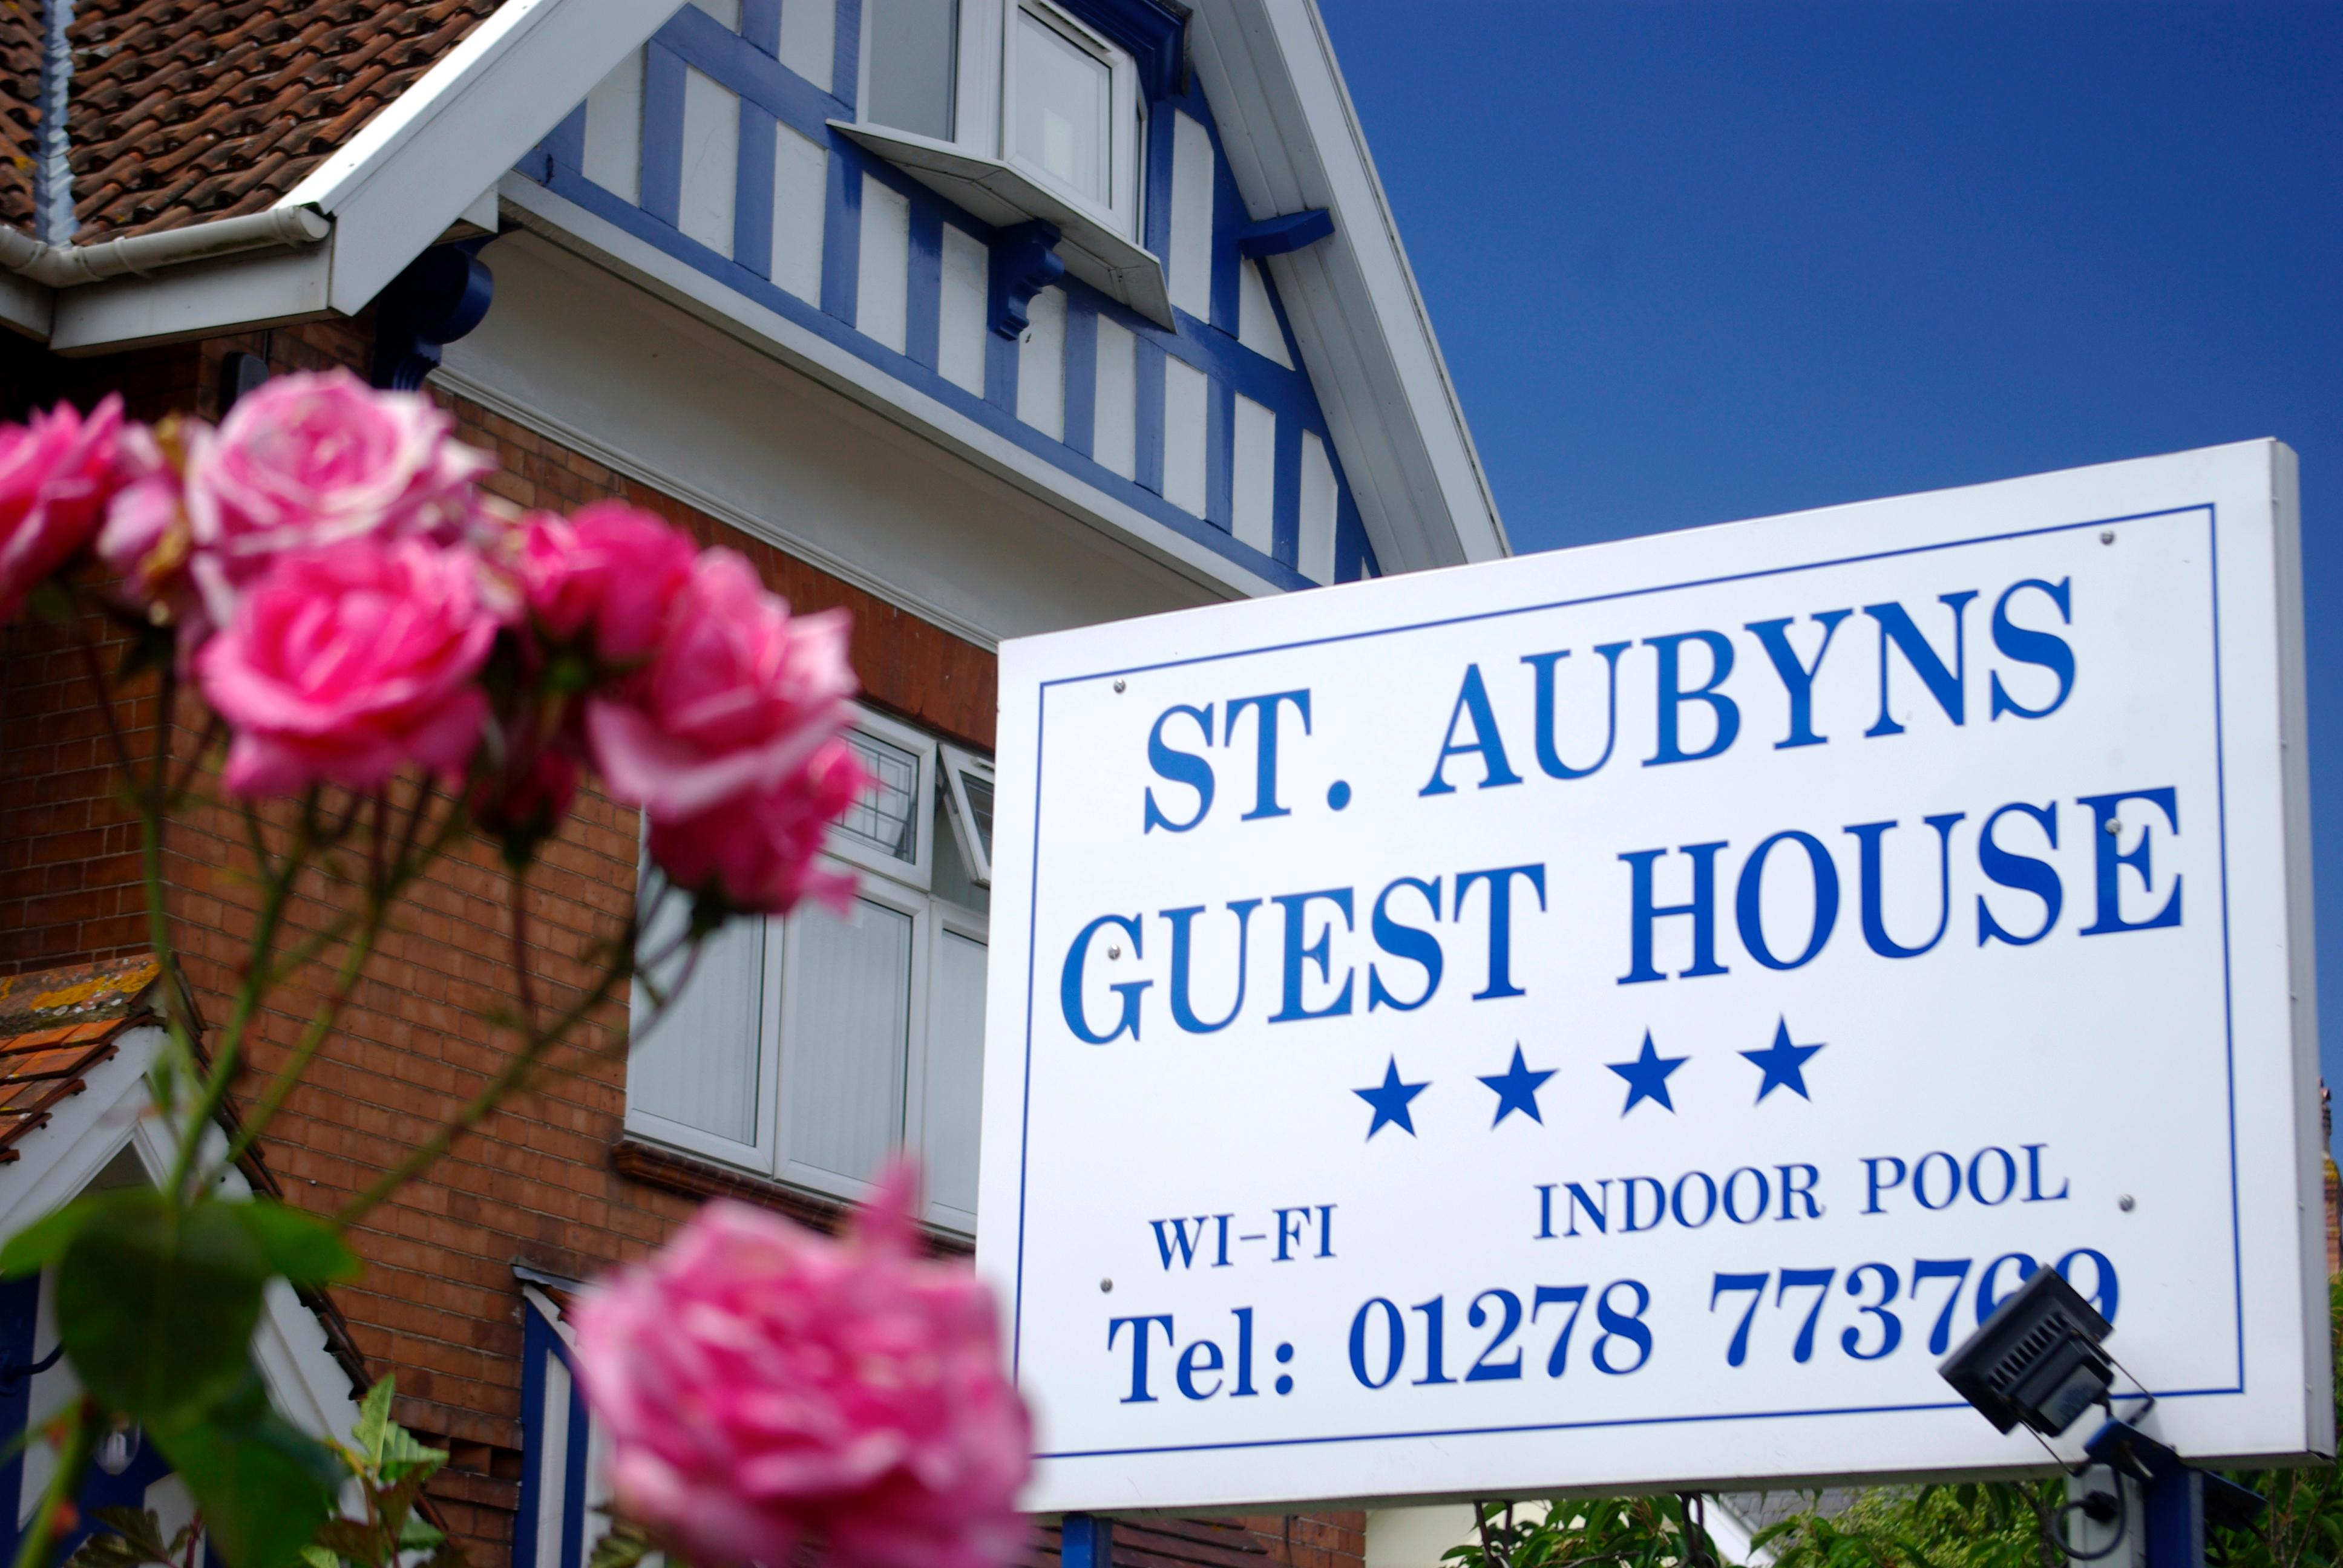 St. Aubyns Guest House